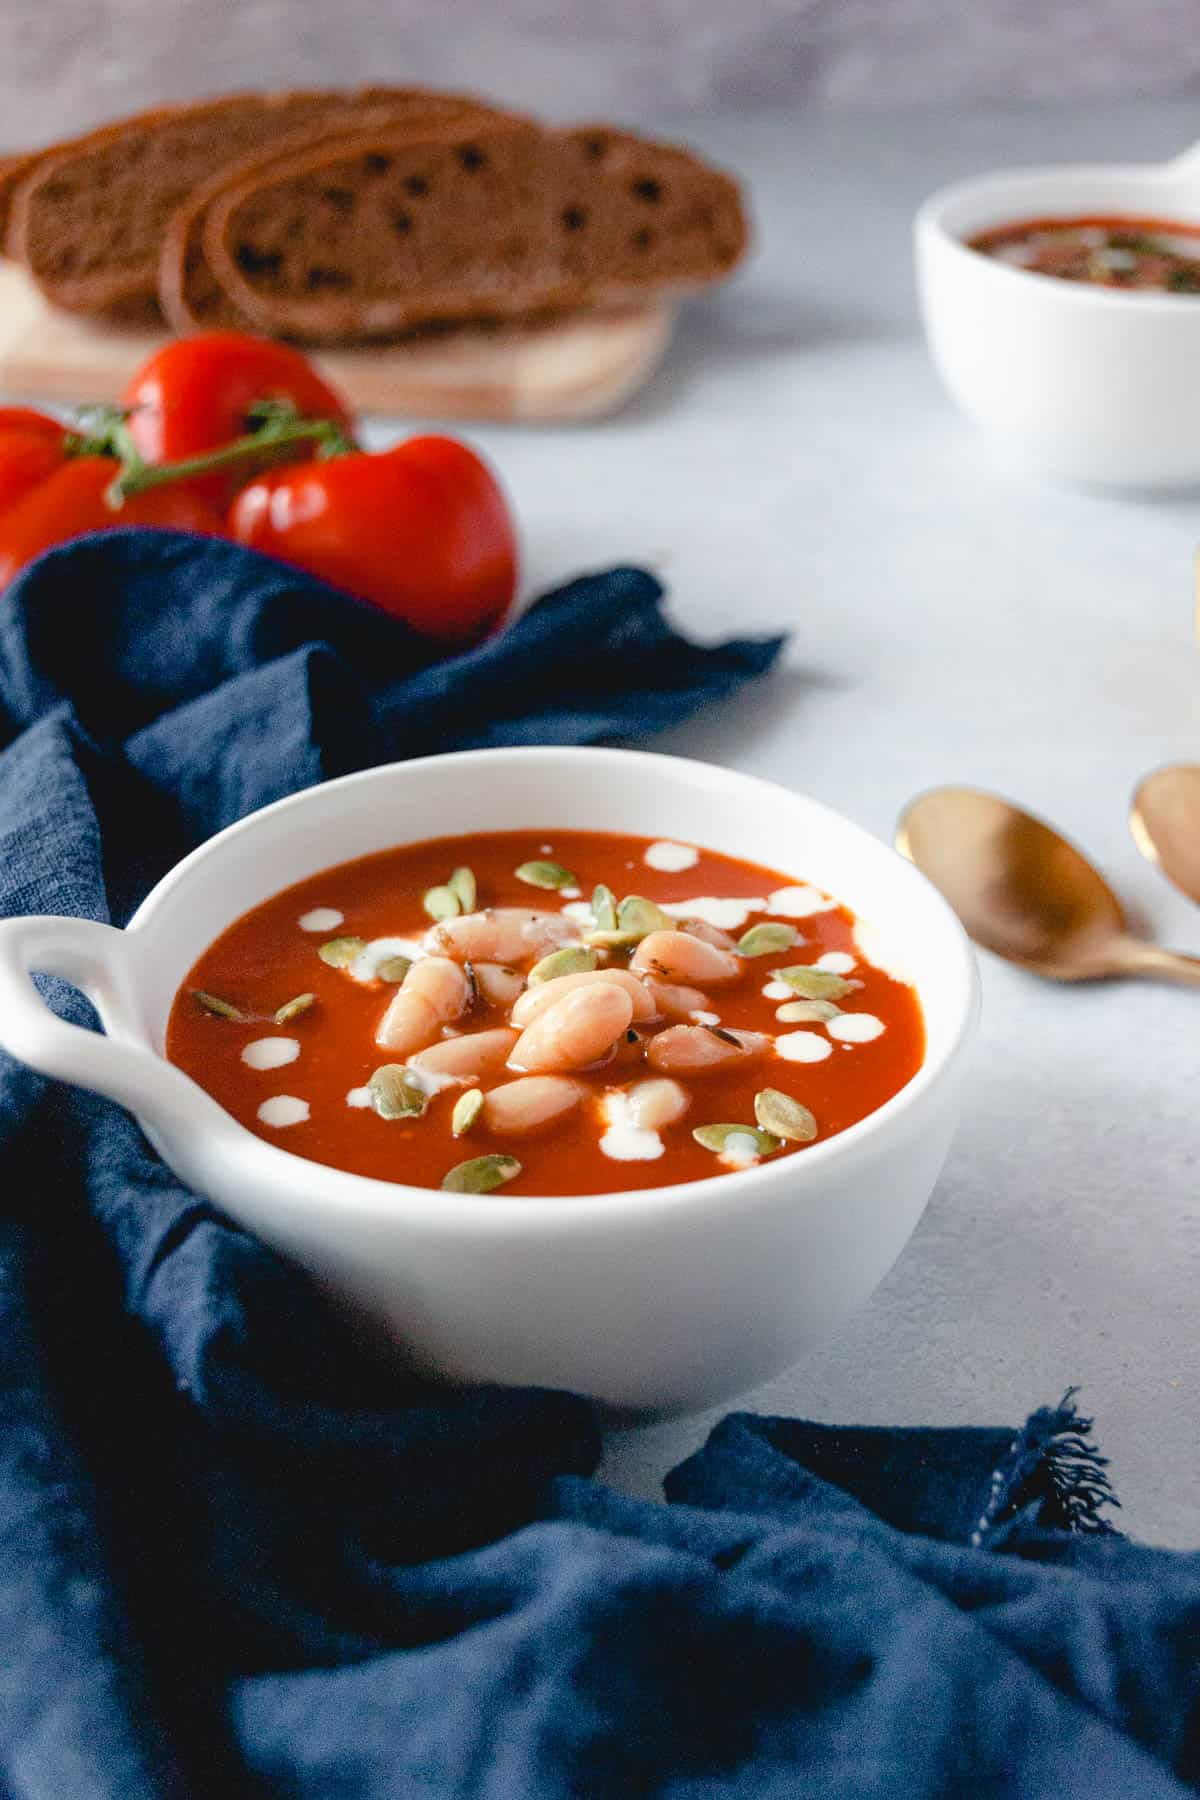 White bowl full of tomato soup with healthy toppings on top, navy blue linen on the side, and tomatoes and bread in the background